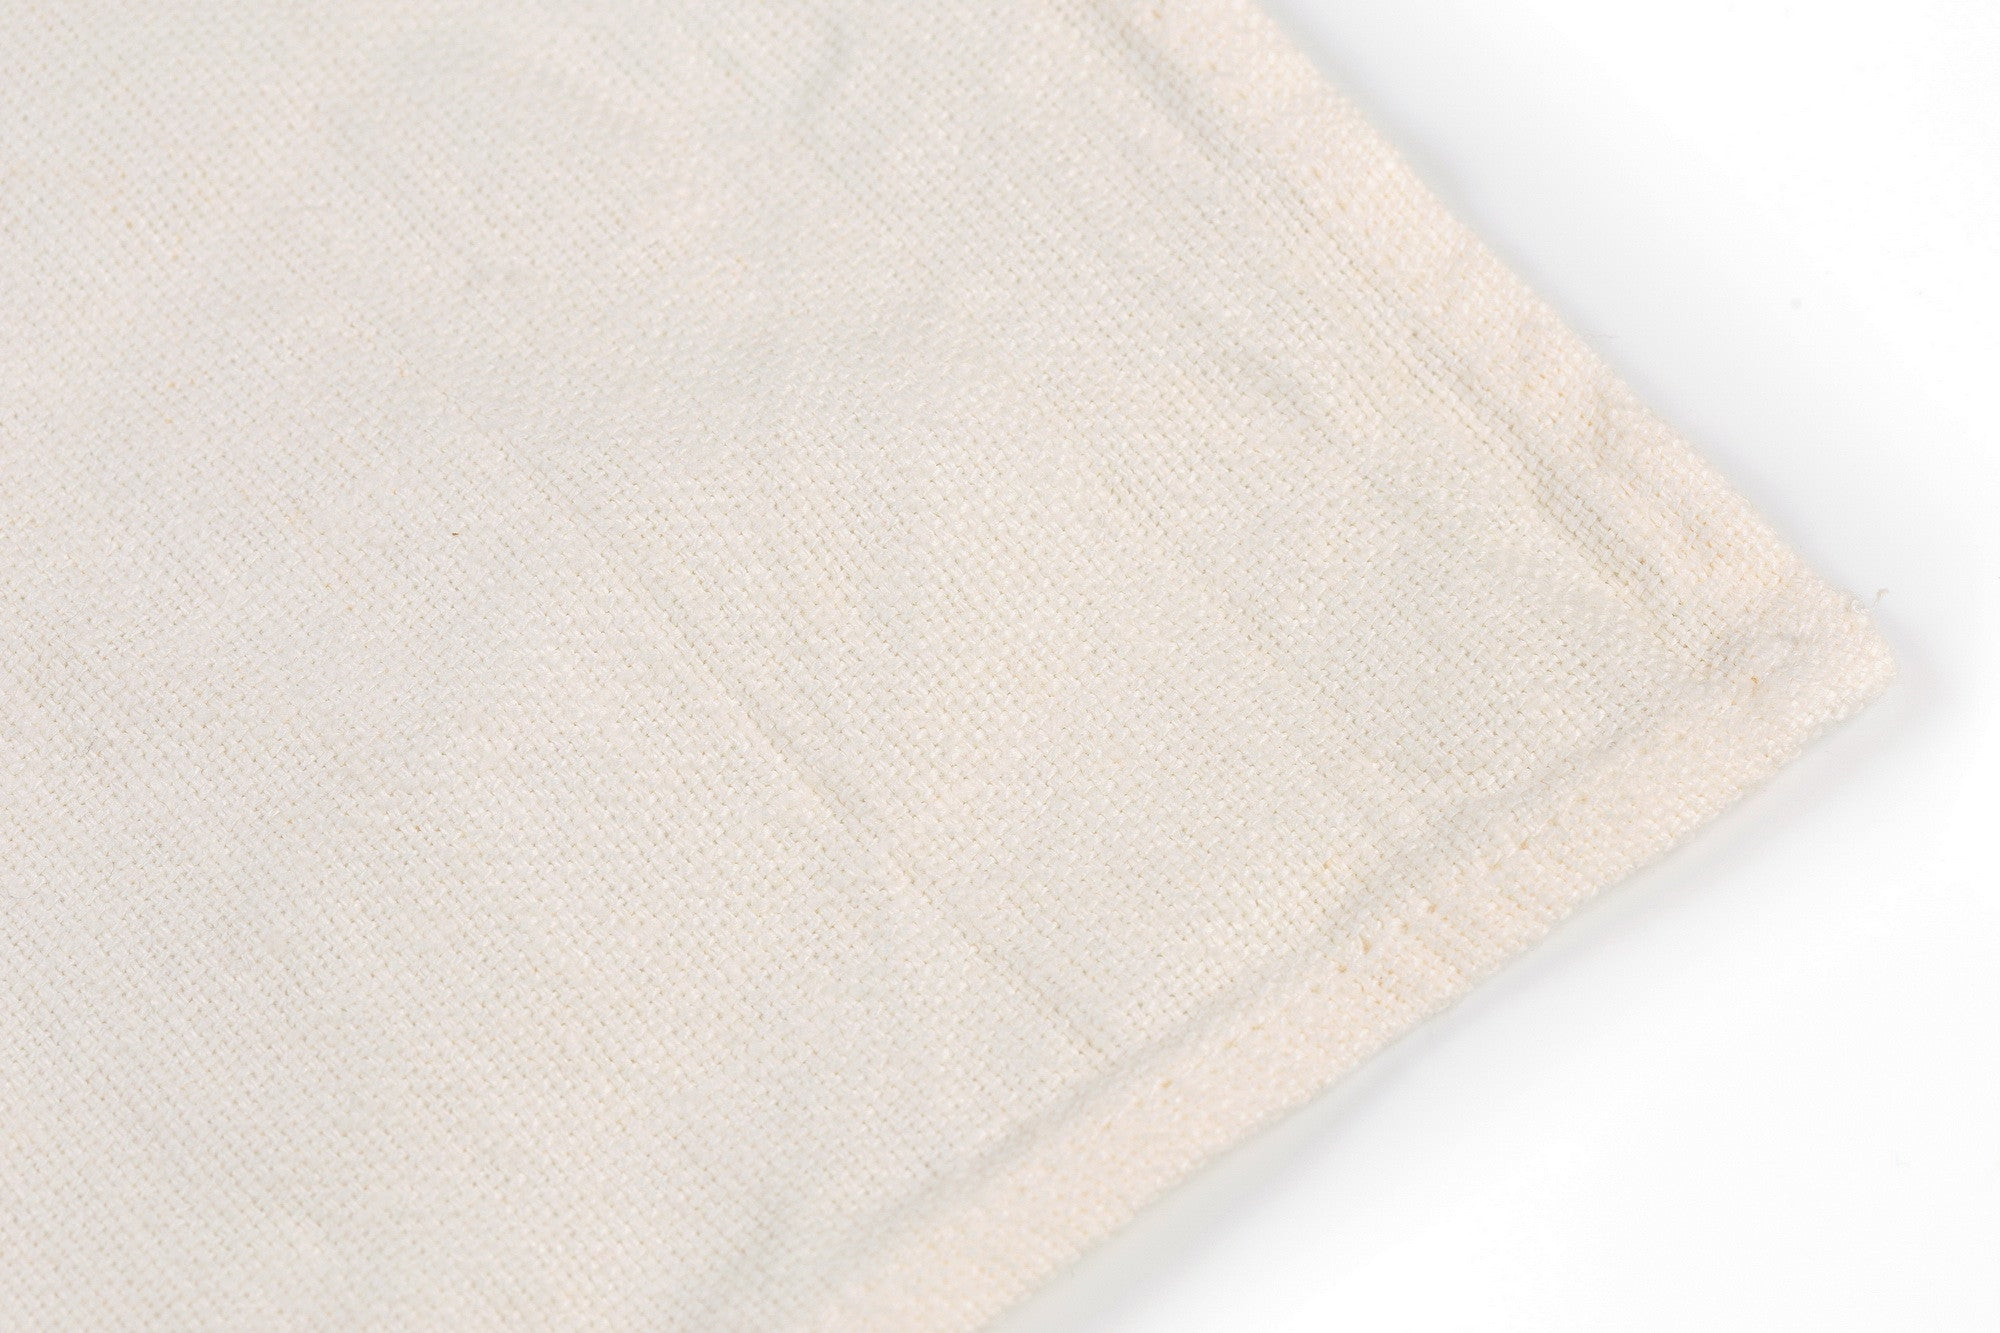 BLESS LINEN Stonewash Pure Linen Flax Bath Towel, White - BLESS LINEN pure linen towels and blankets - 2